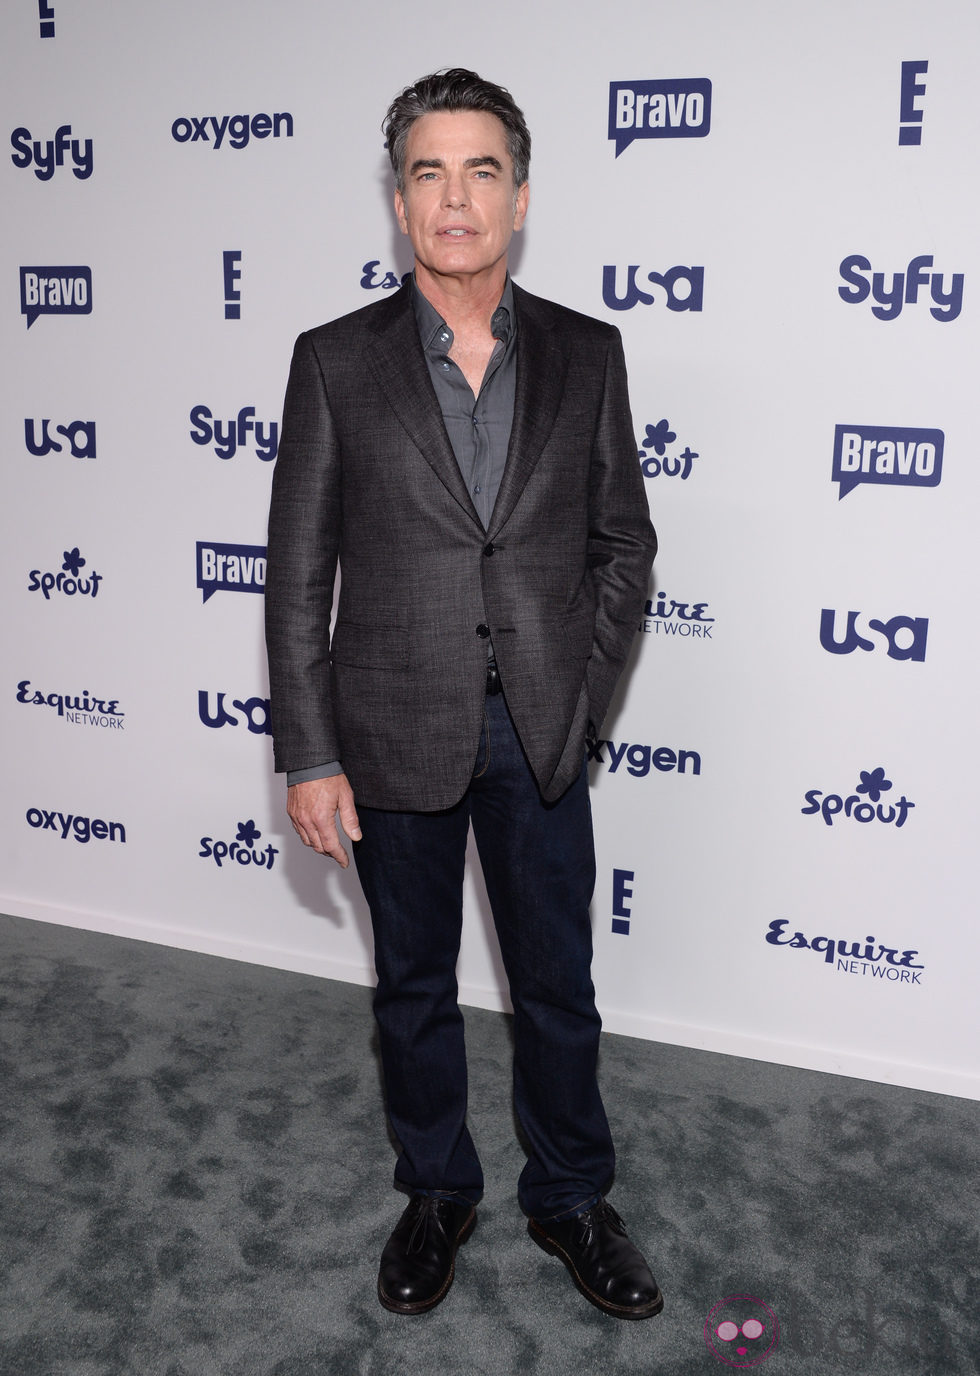 Peter Gallagher en los Upfronts de la NBC Universal 2014